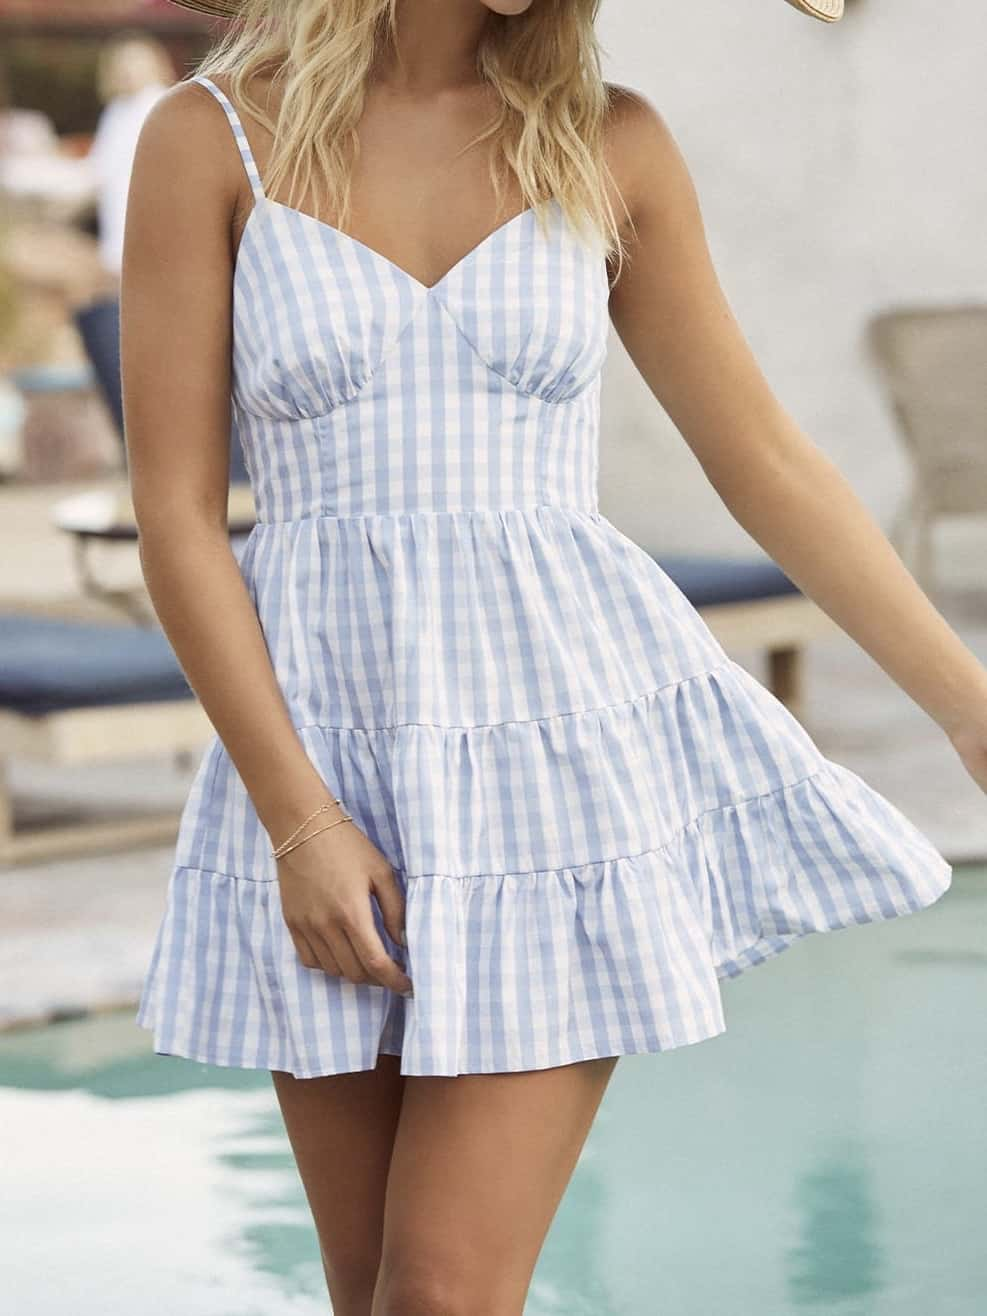 blue sorority rush outfit cheap